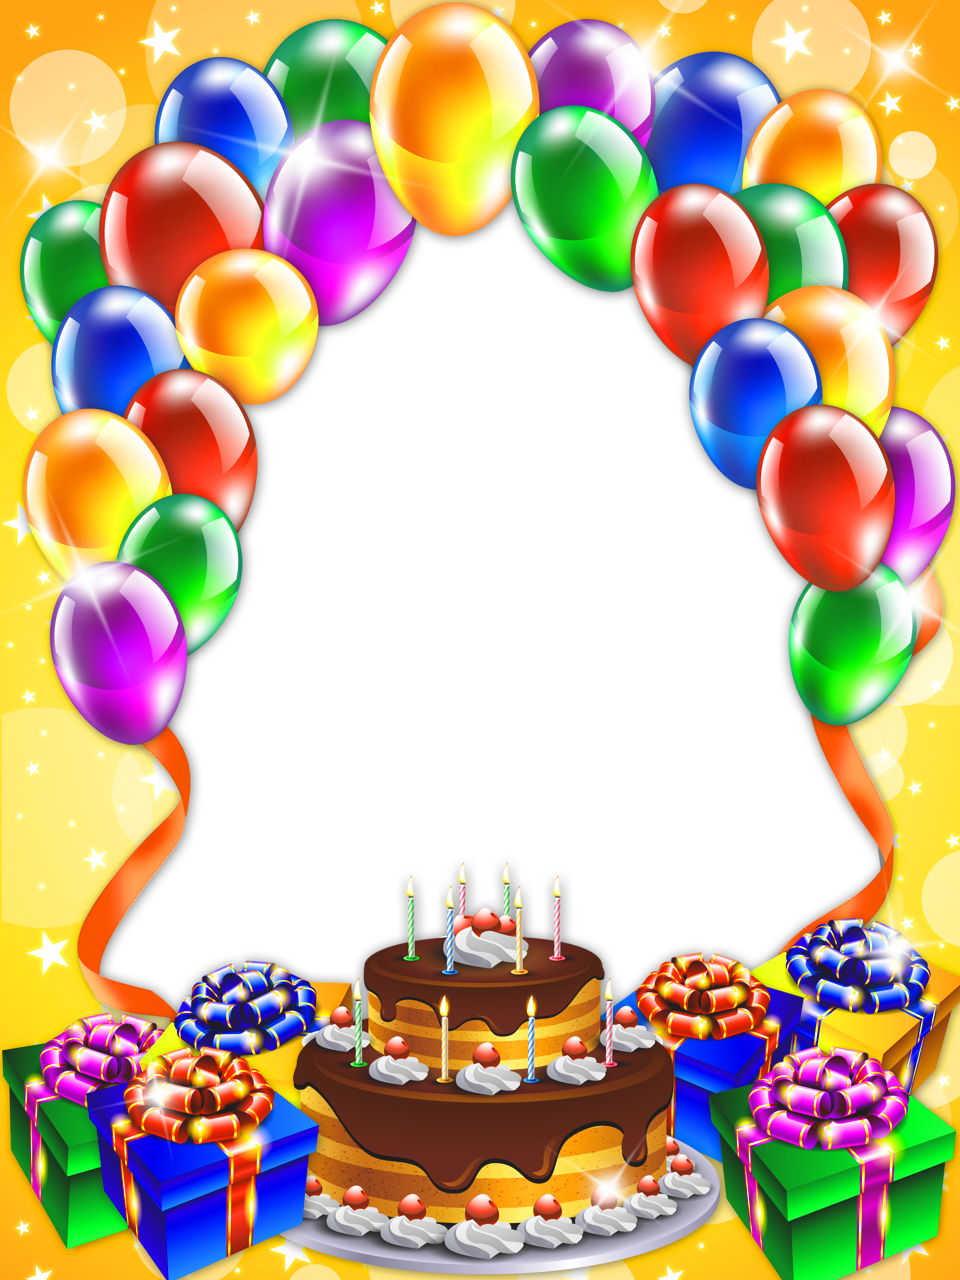 Happy birthday frame png. Transparent gallery yopriceville high